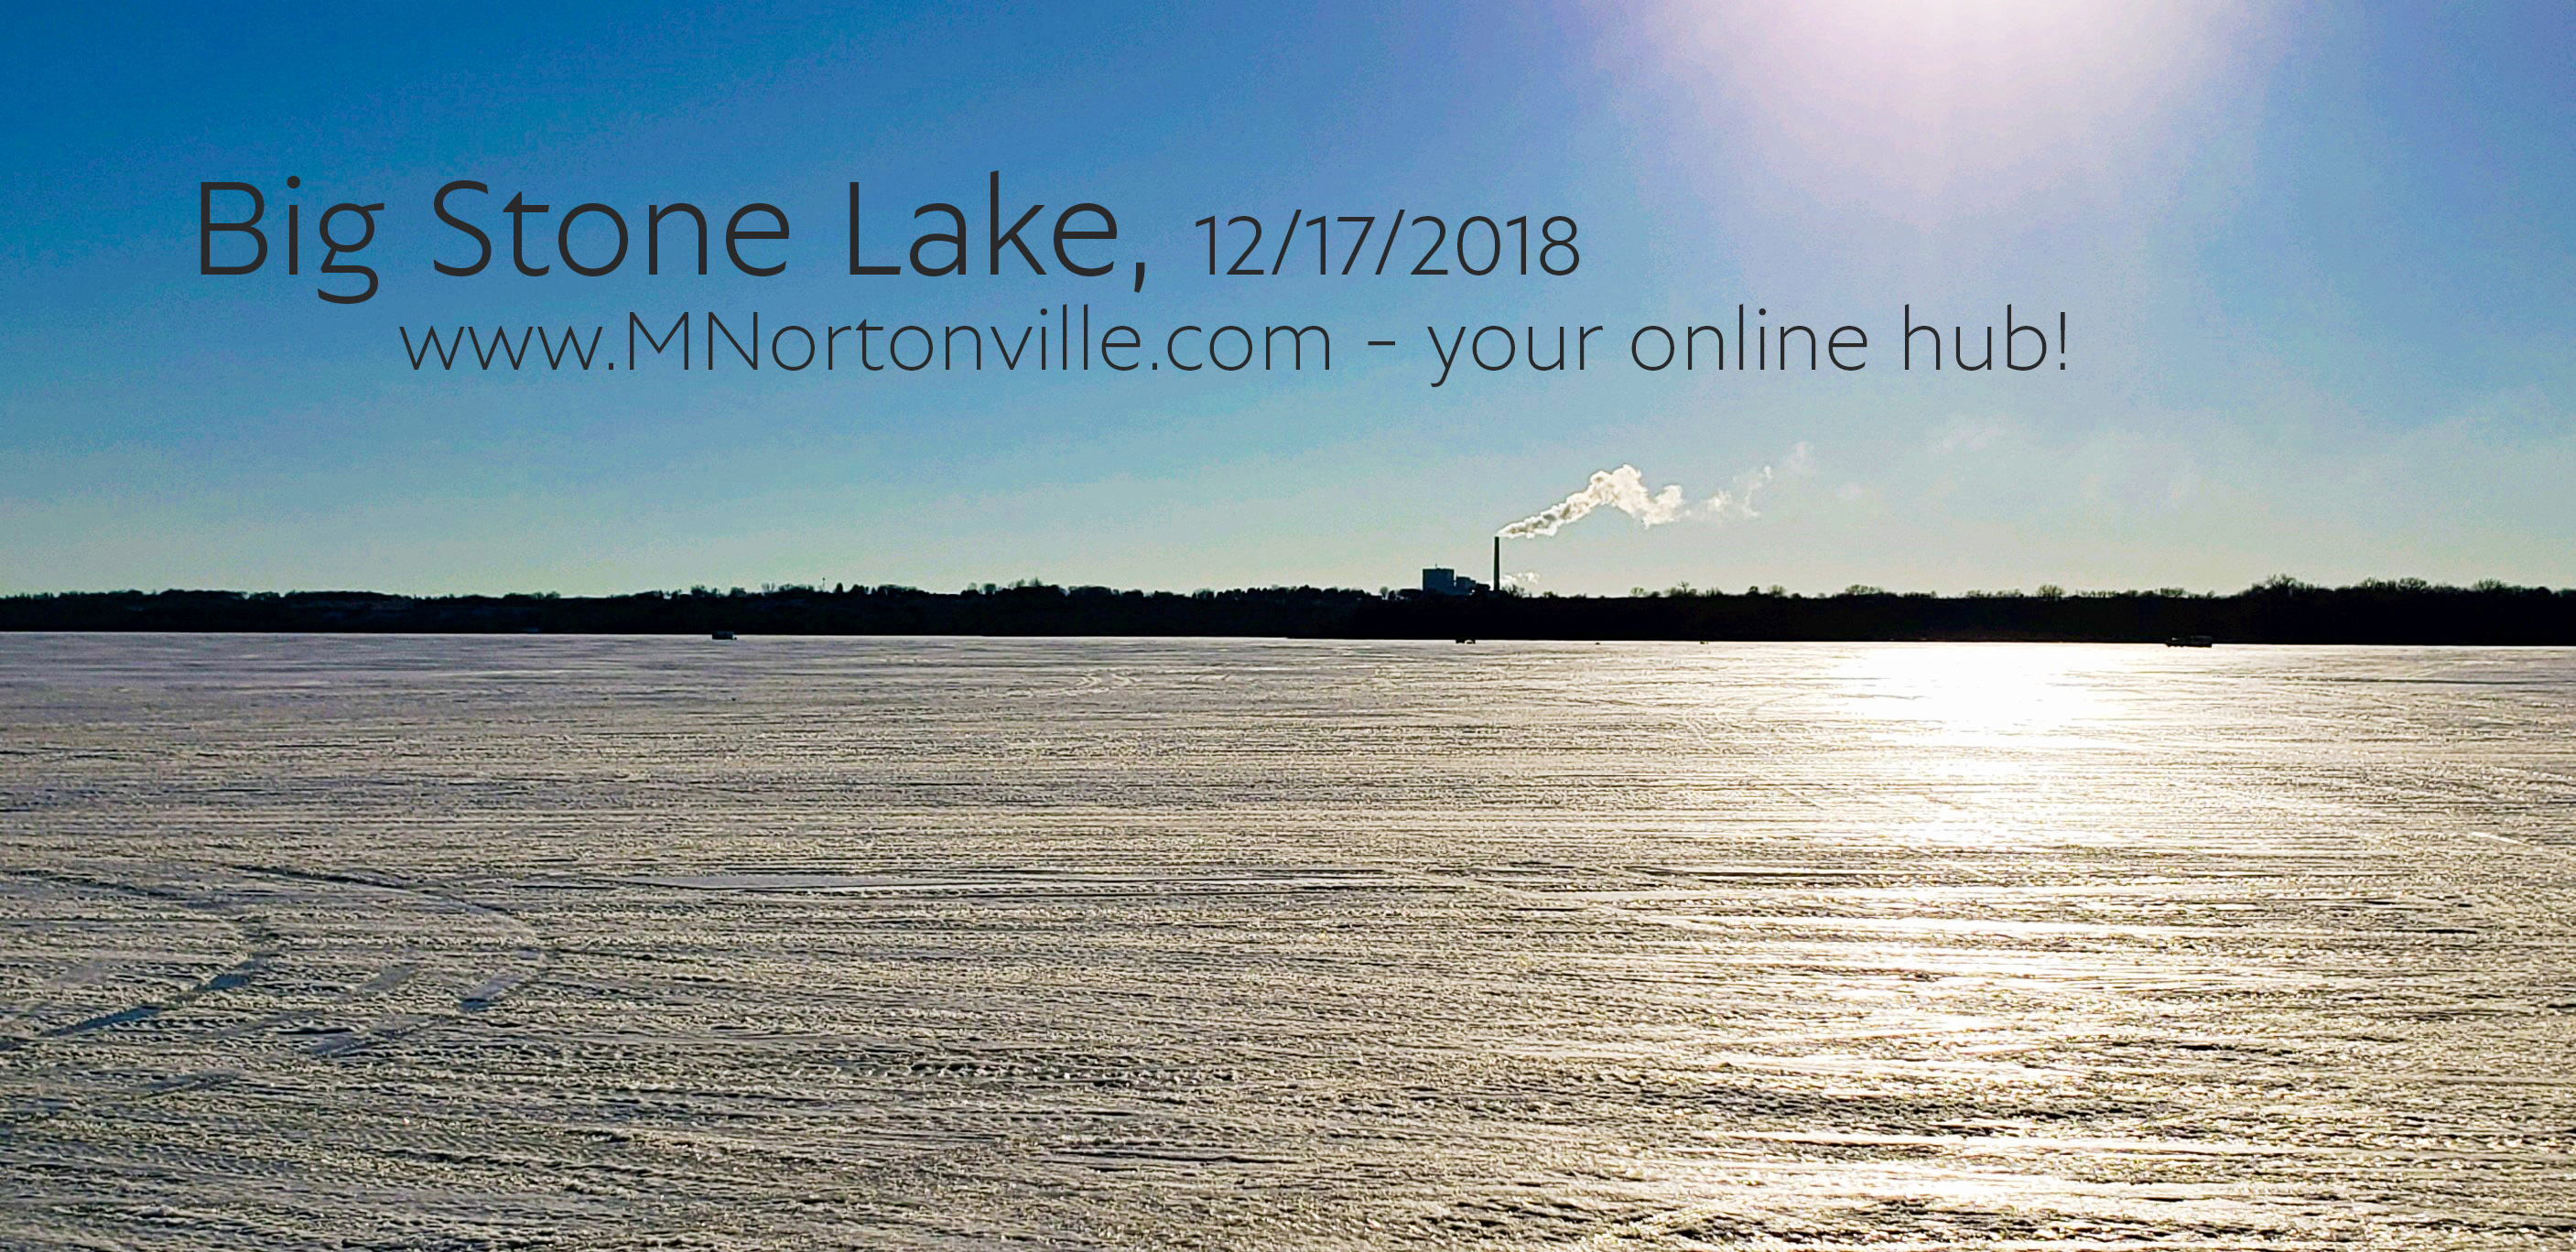 Fishing & Big Stone Lake December 2018